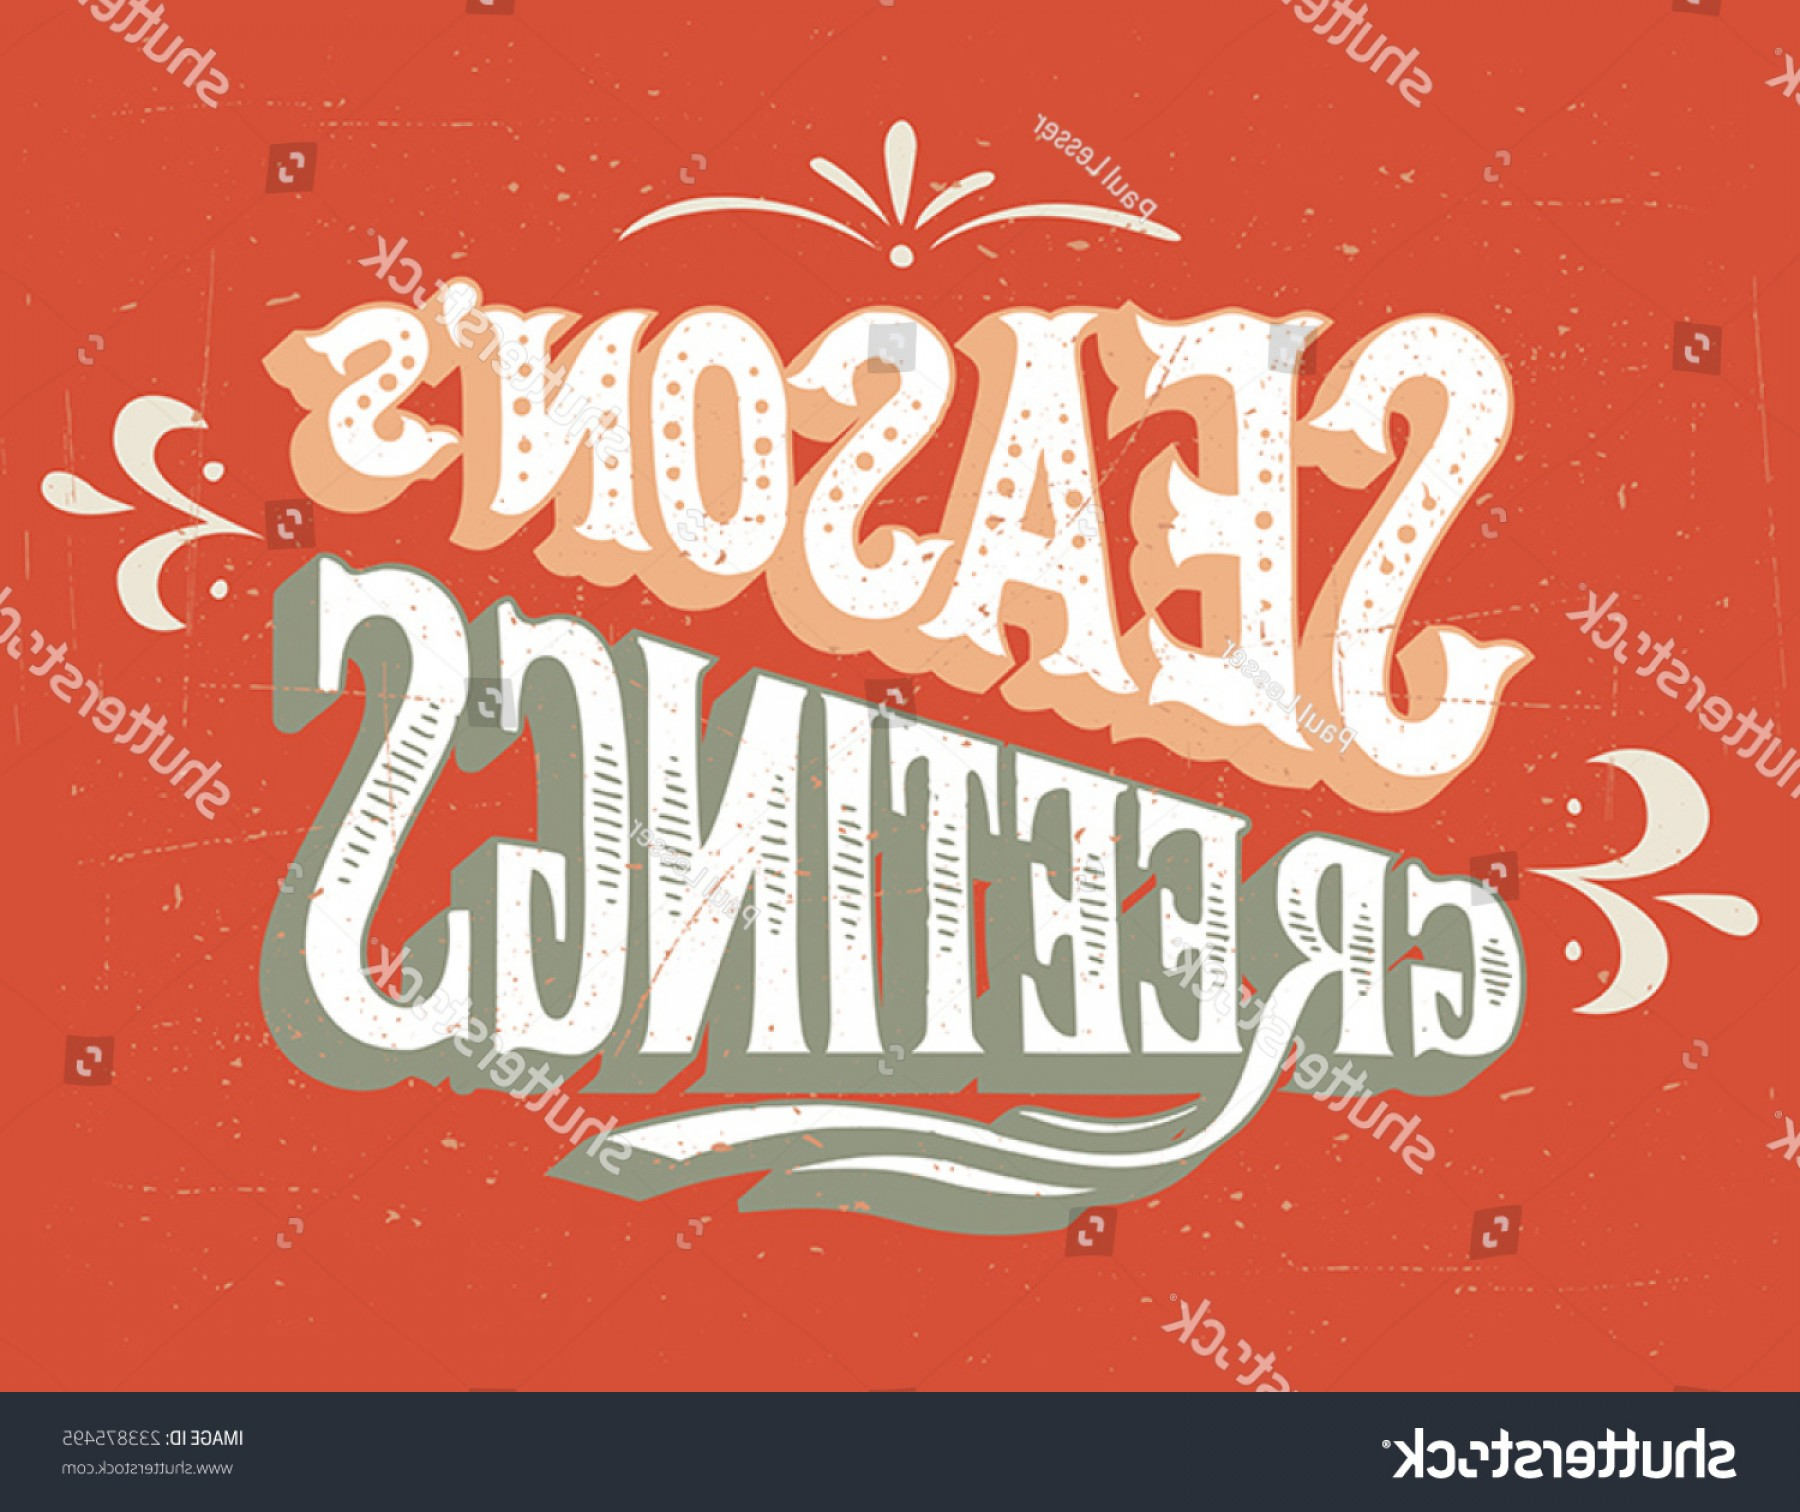 Season S Greetings Vector Free: Seasons Greetings Vintage Handlettering Retro Card